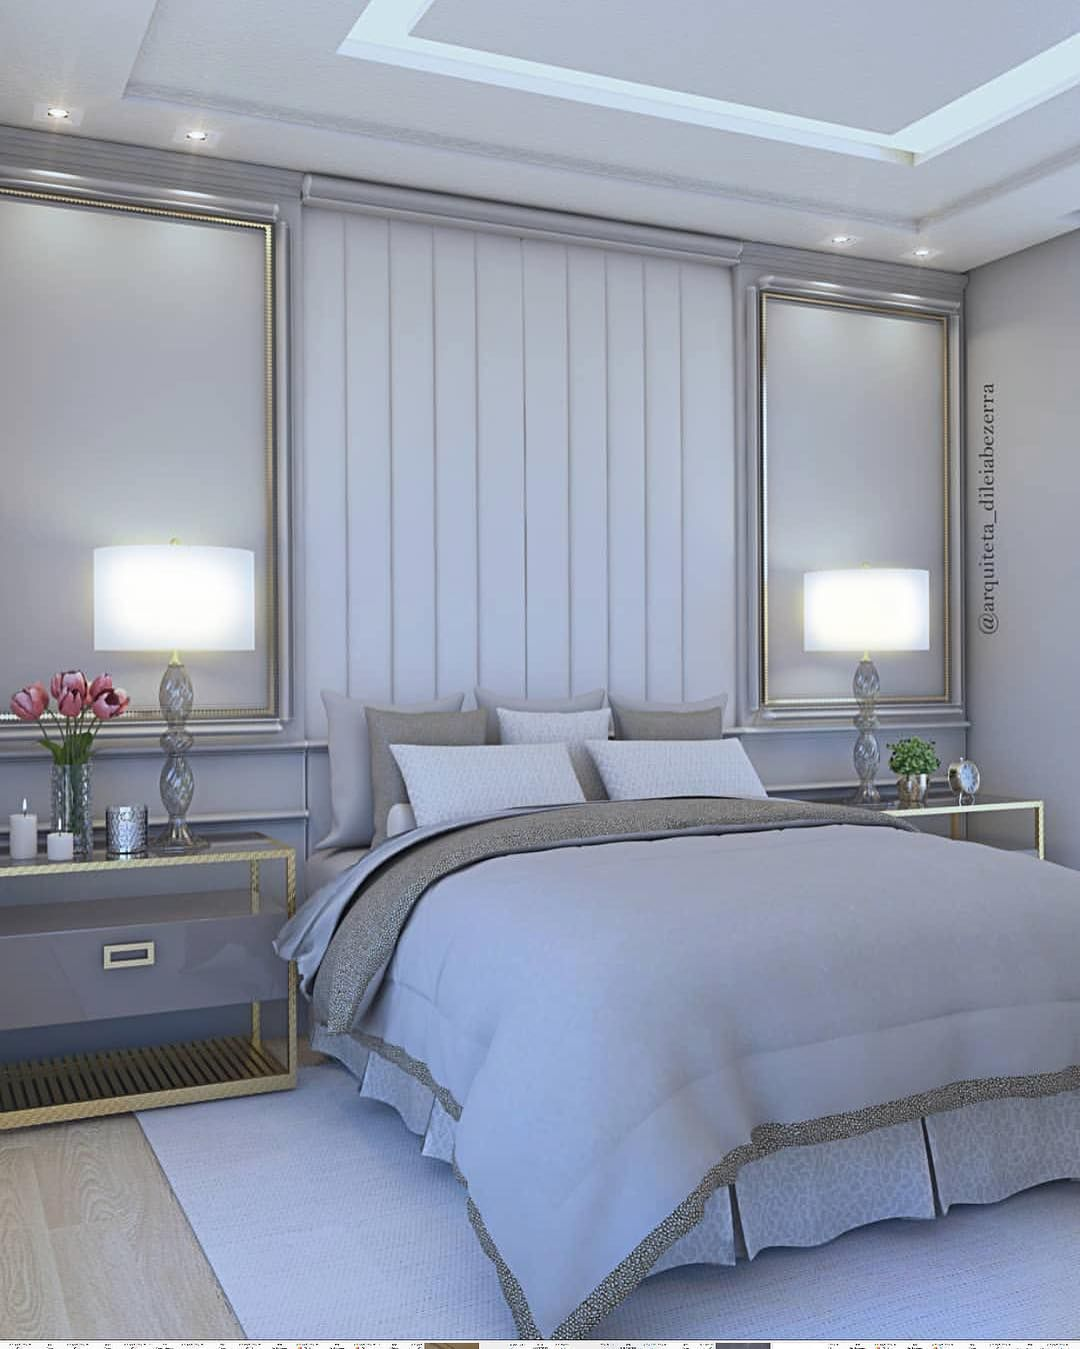 39++ Discount home decor sites ideas in 2021